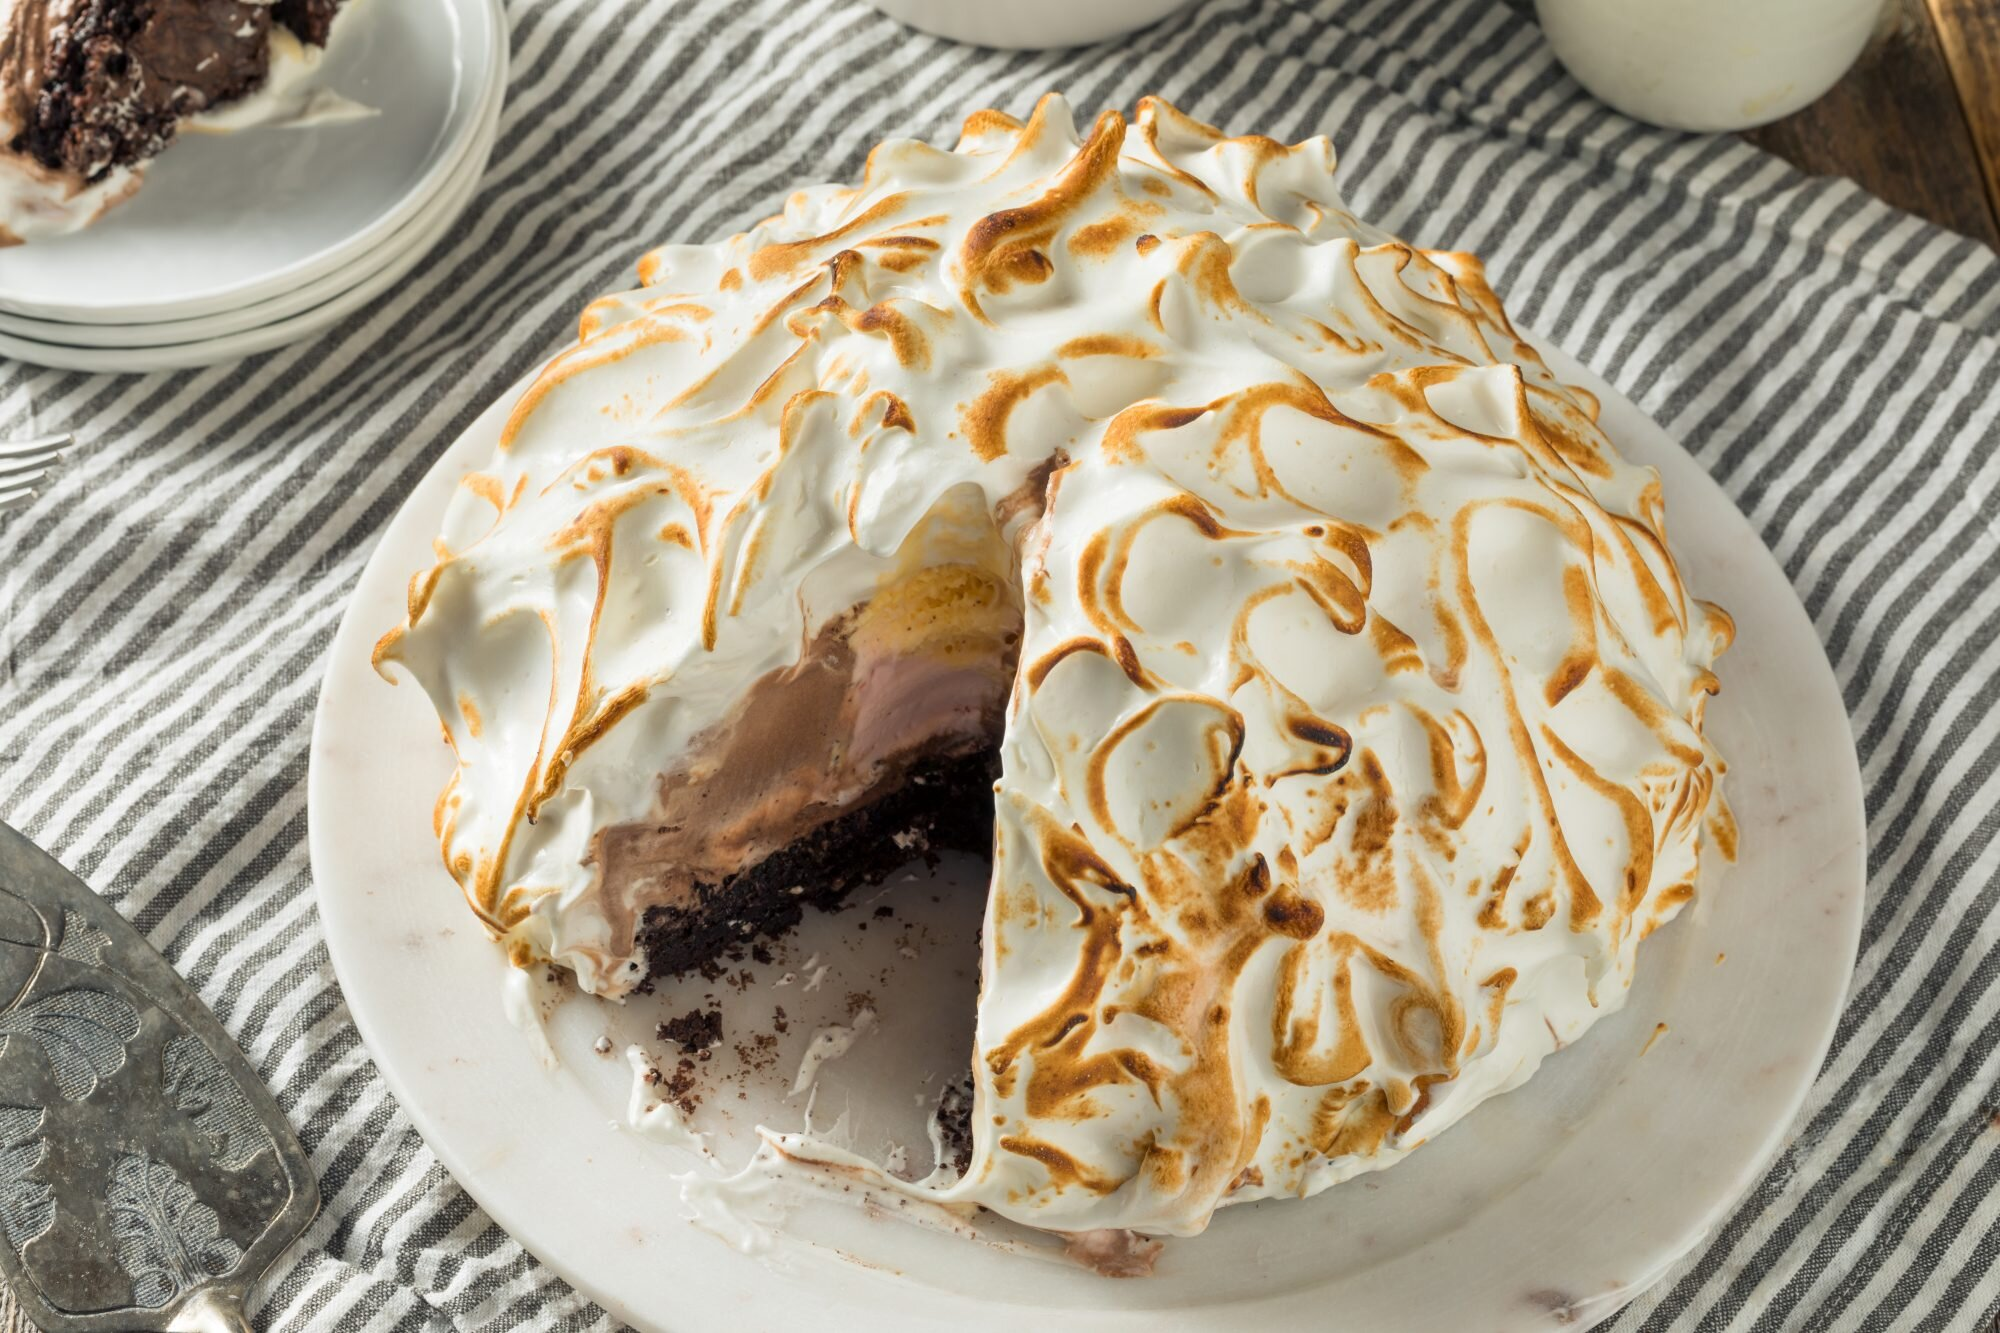 What Is Baked Alaska and How Do You Make It?